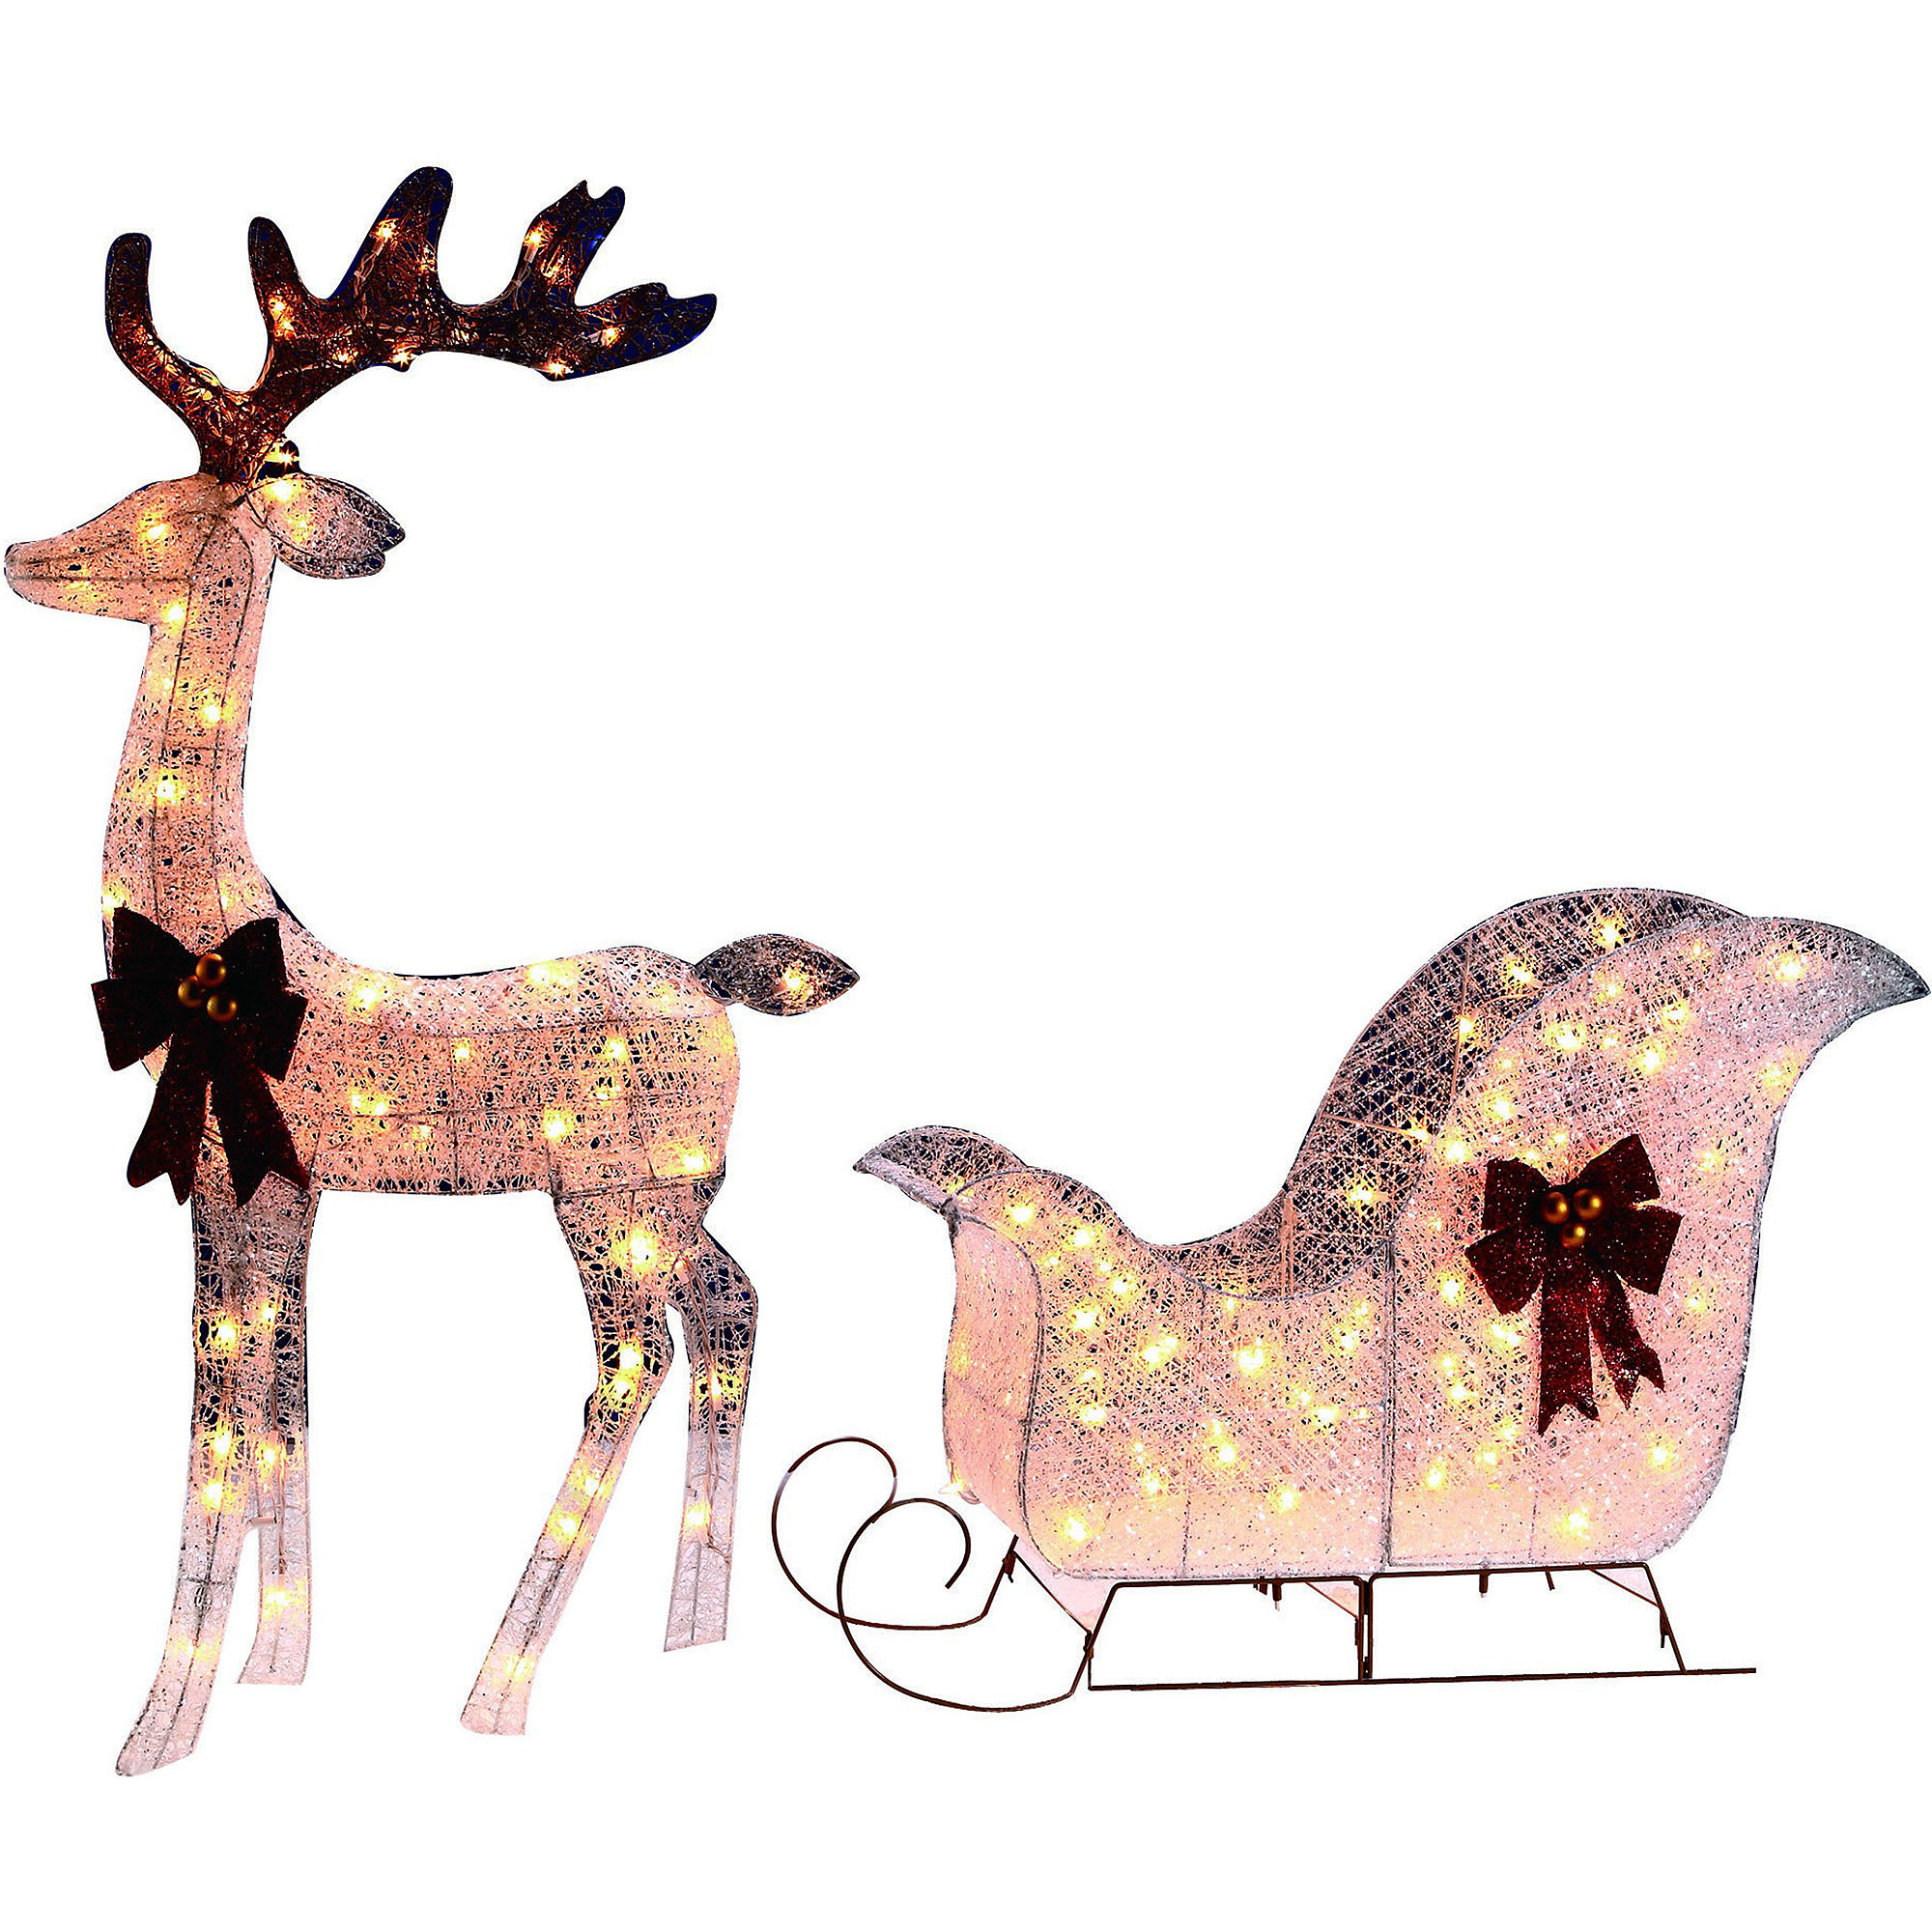 holiday time 52 deer and 38 sleigh light sculpture walmartcom - Walmart Outdoor Christmas Decorations